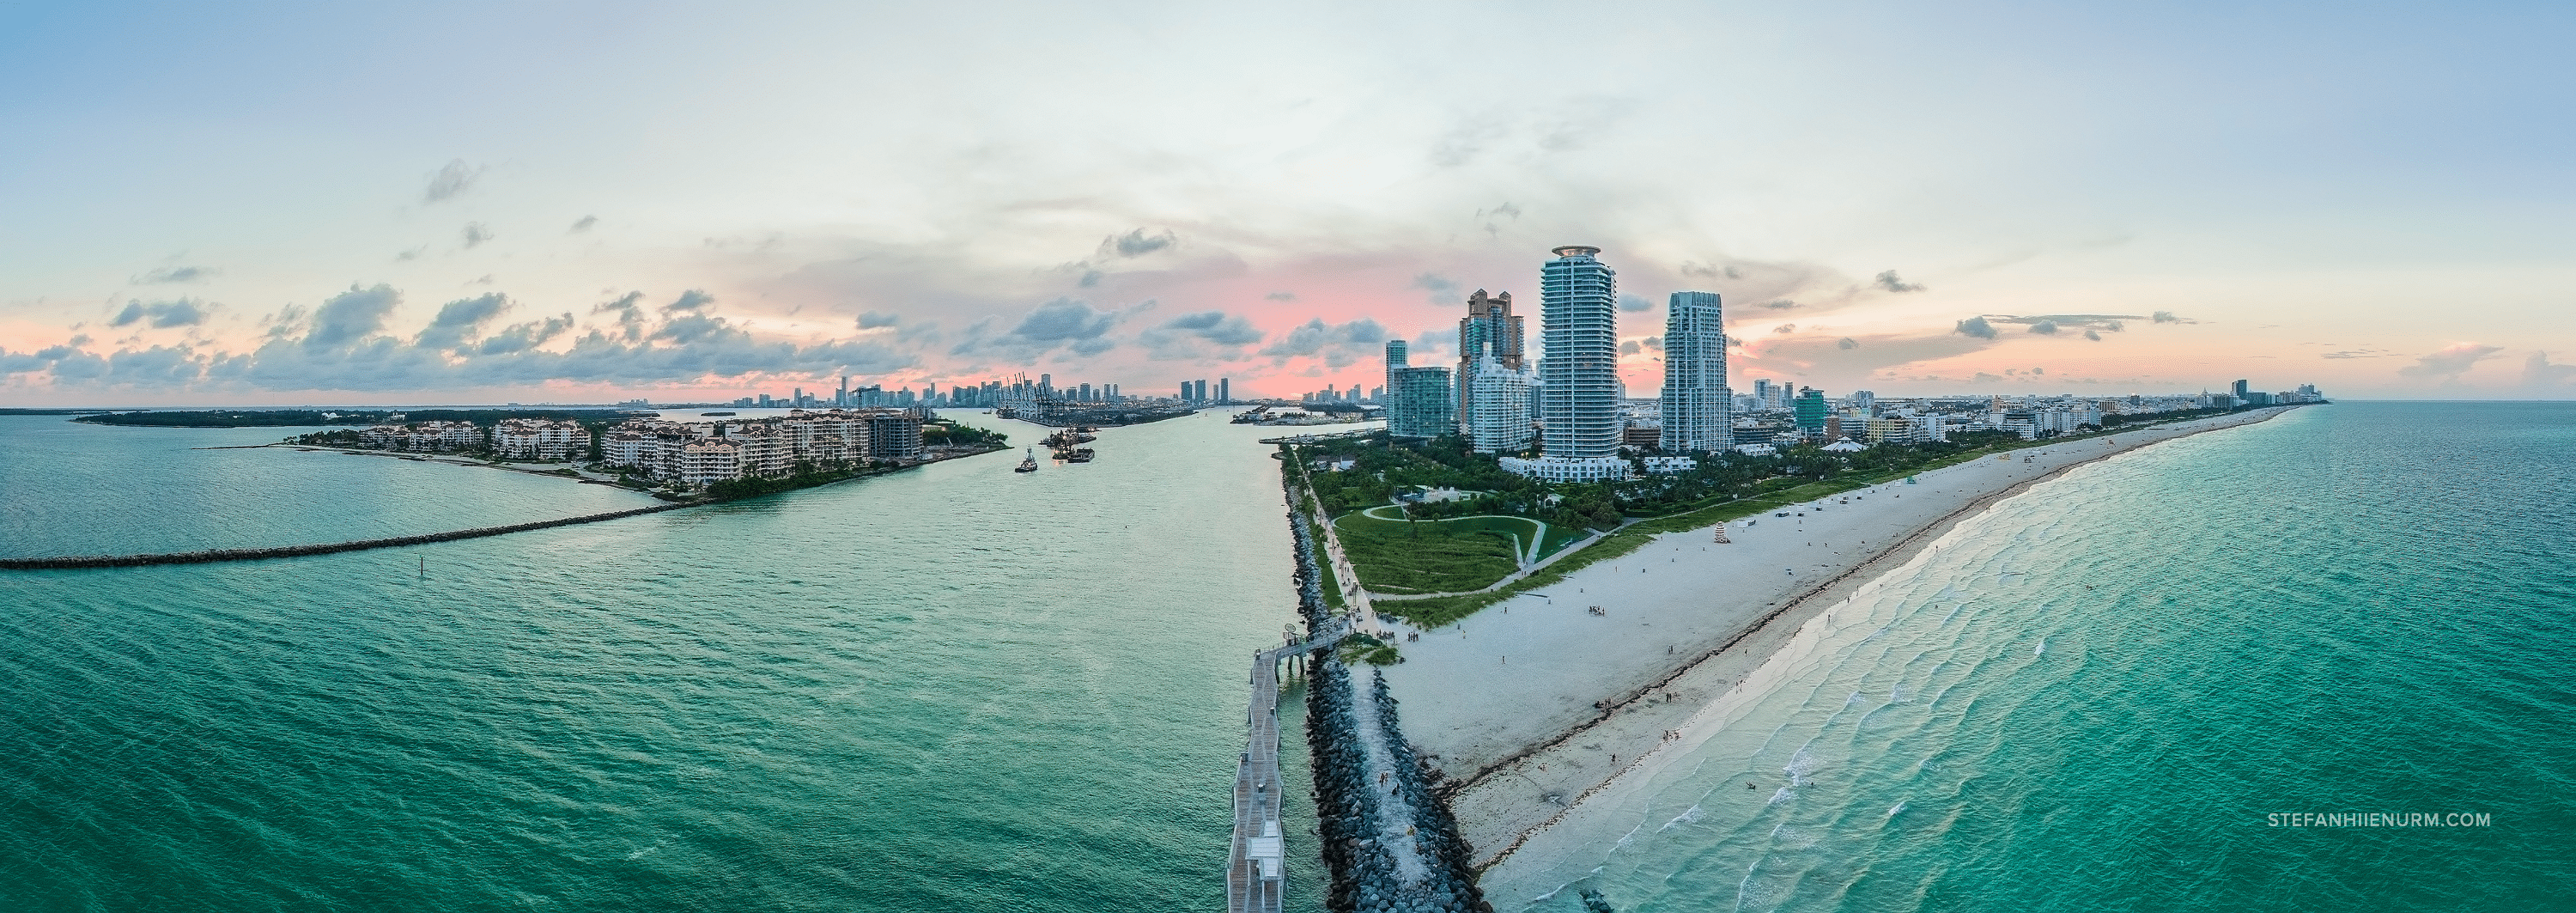 miami_beach_panorama_01_02